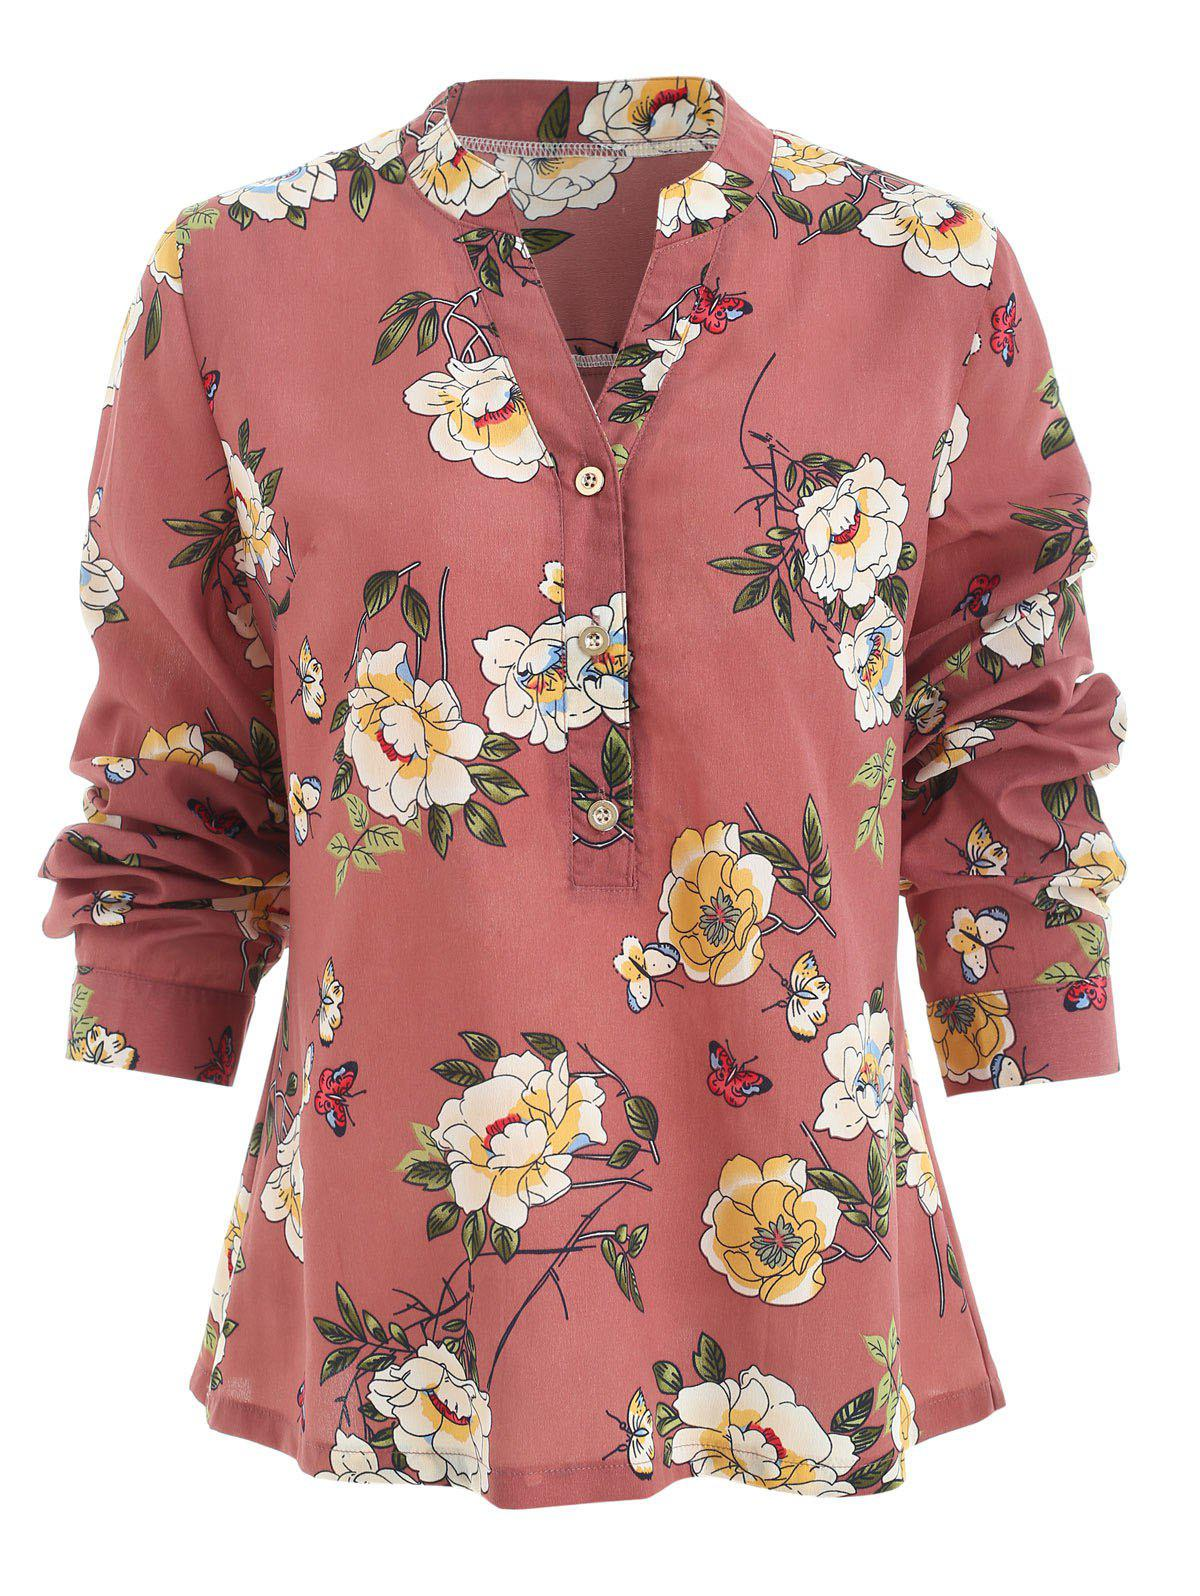 2018 Floral Print Half Button Blouse In Pink M Rosegal